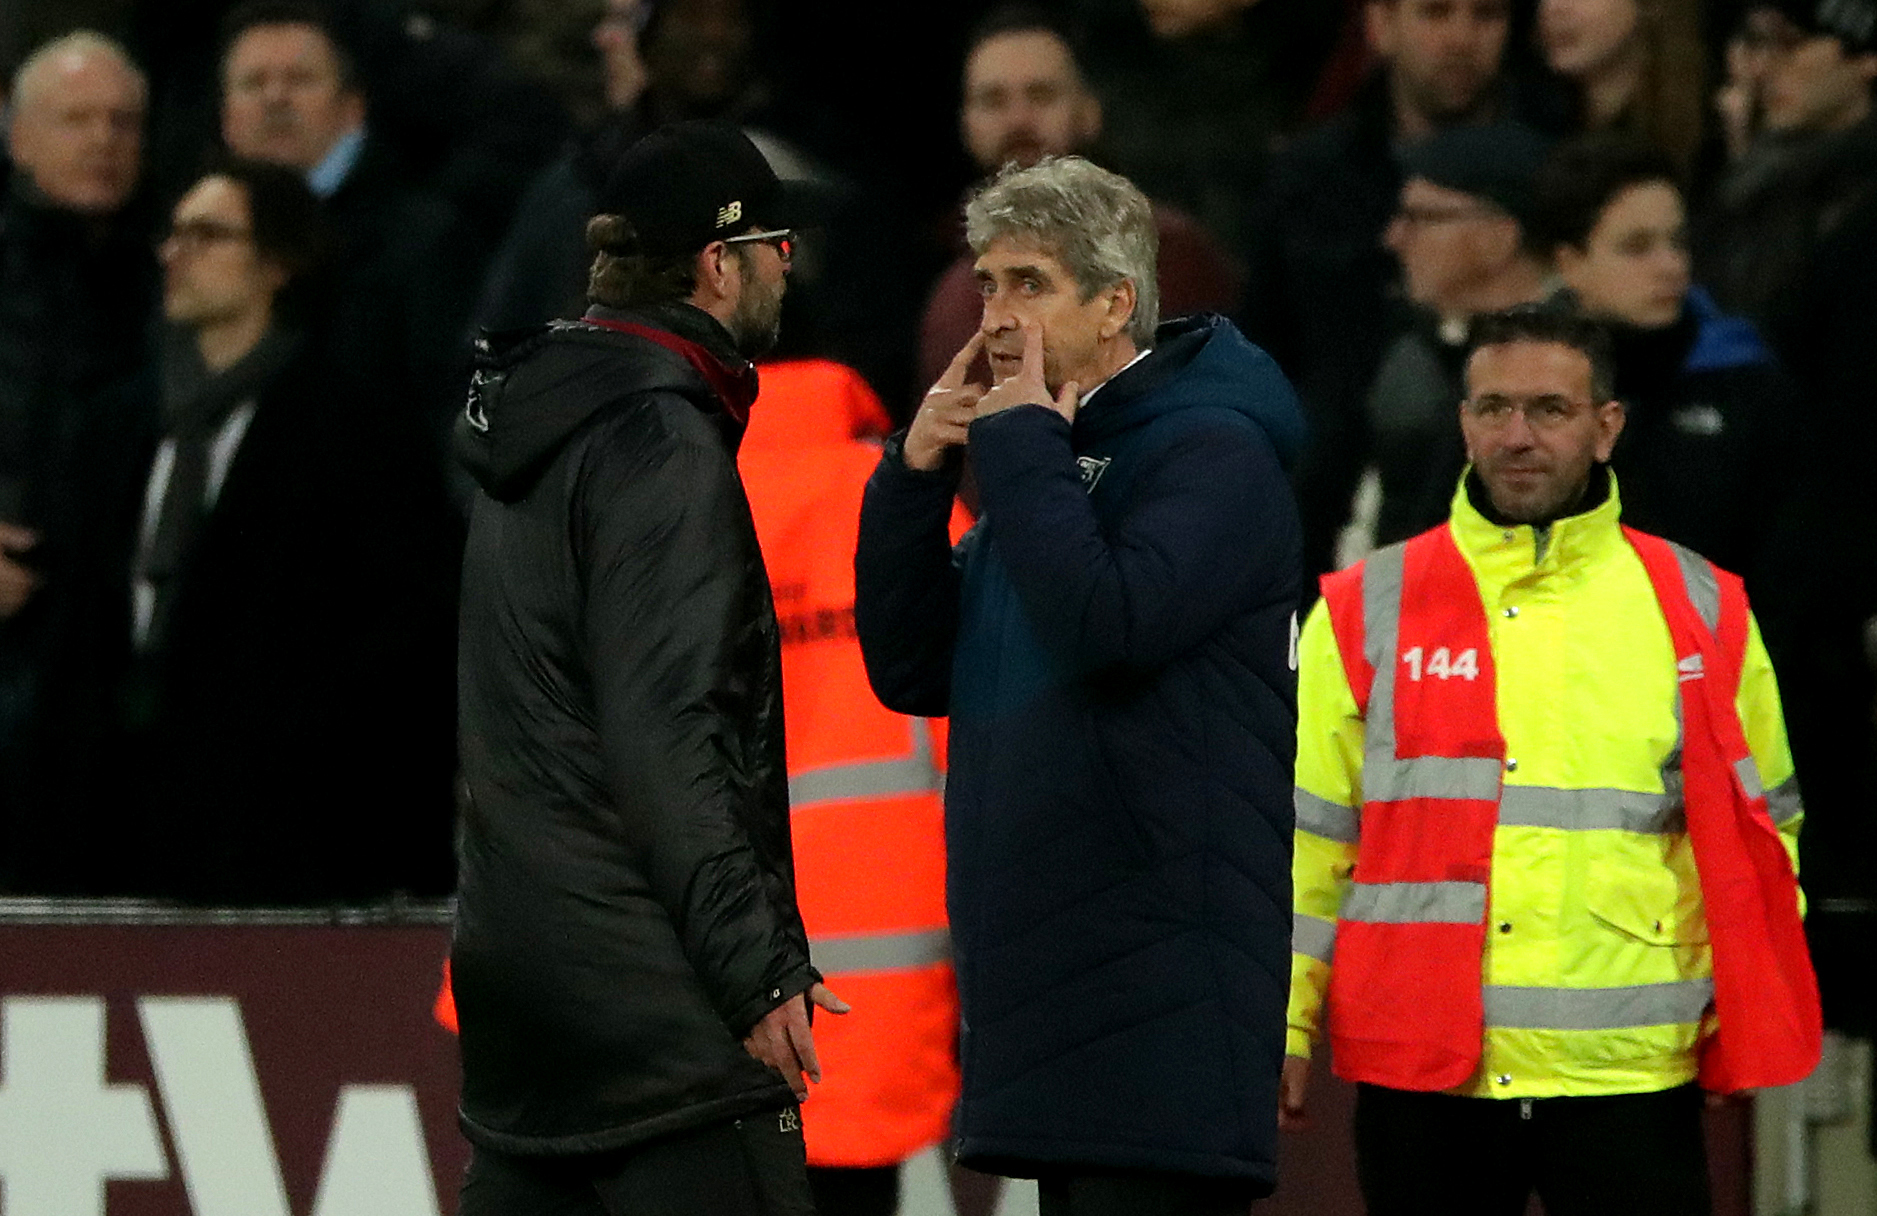 Pellegrini and Klopp exchanged words at full time. Image: PA Images